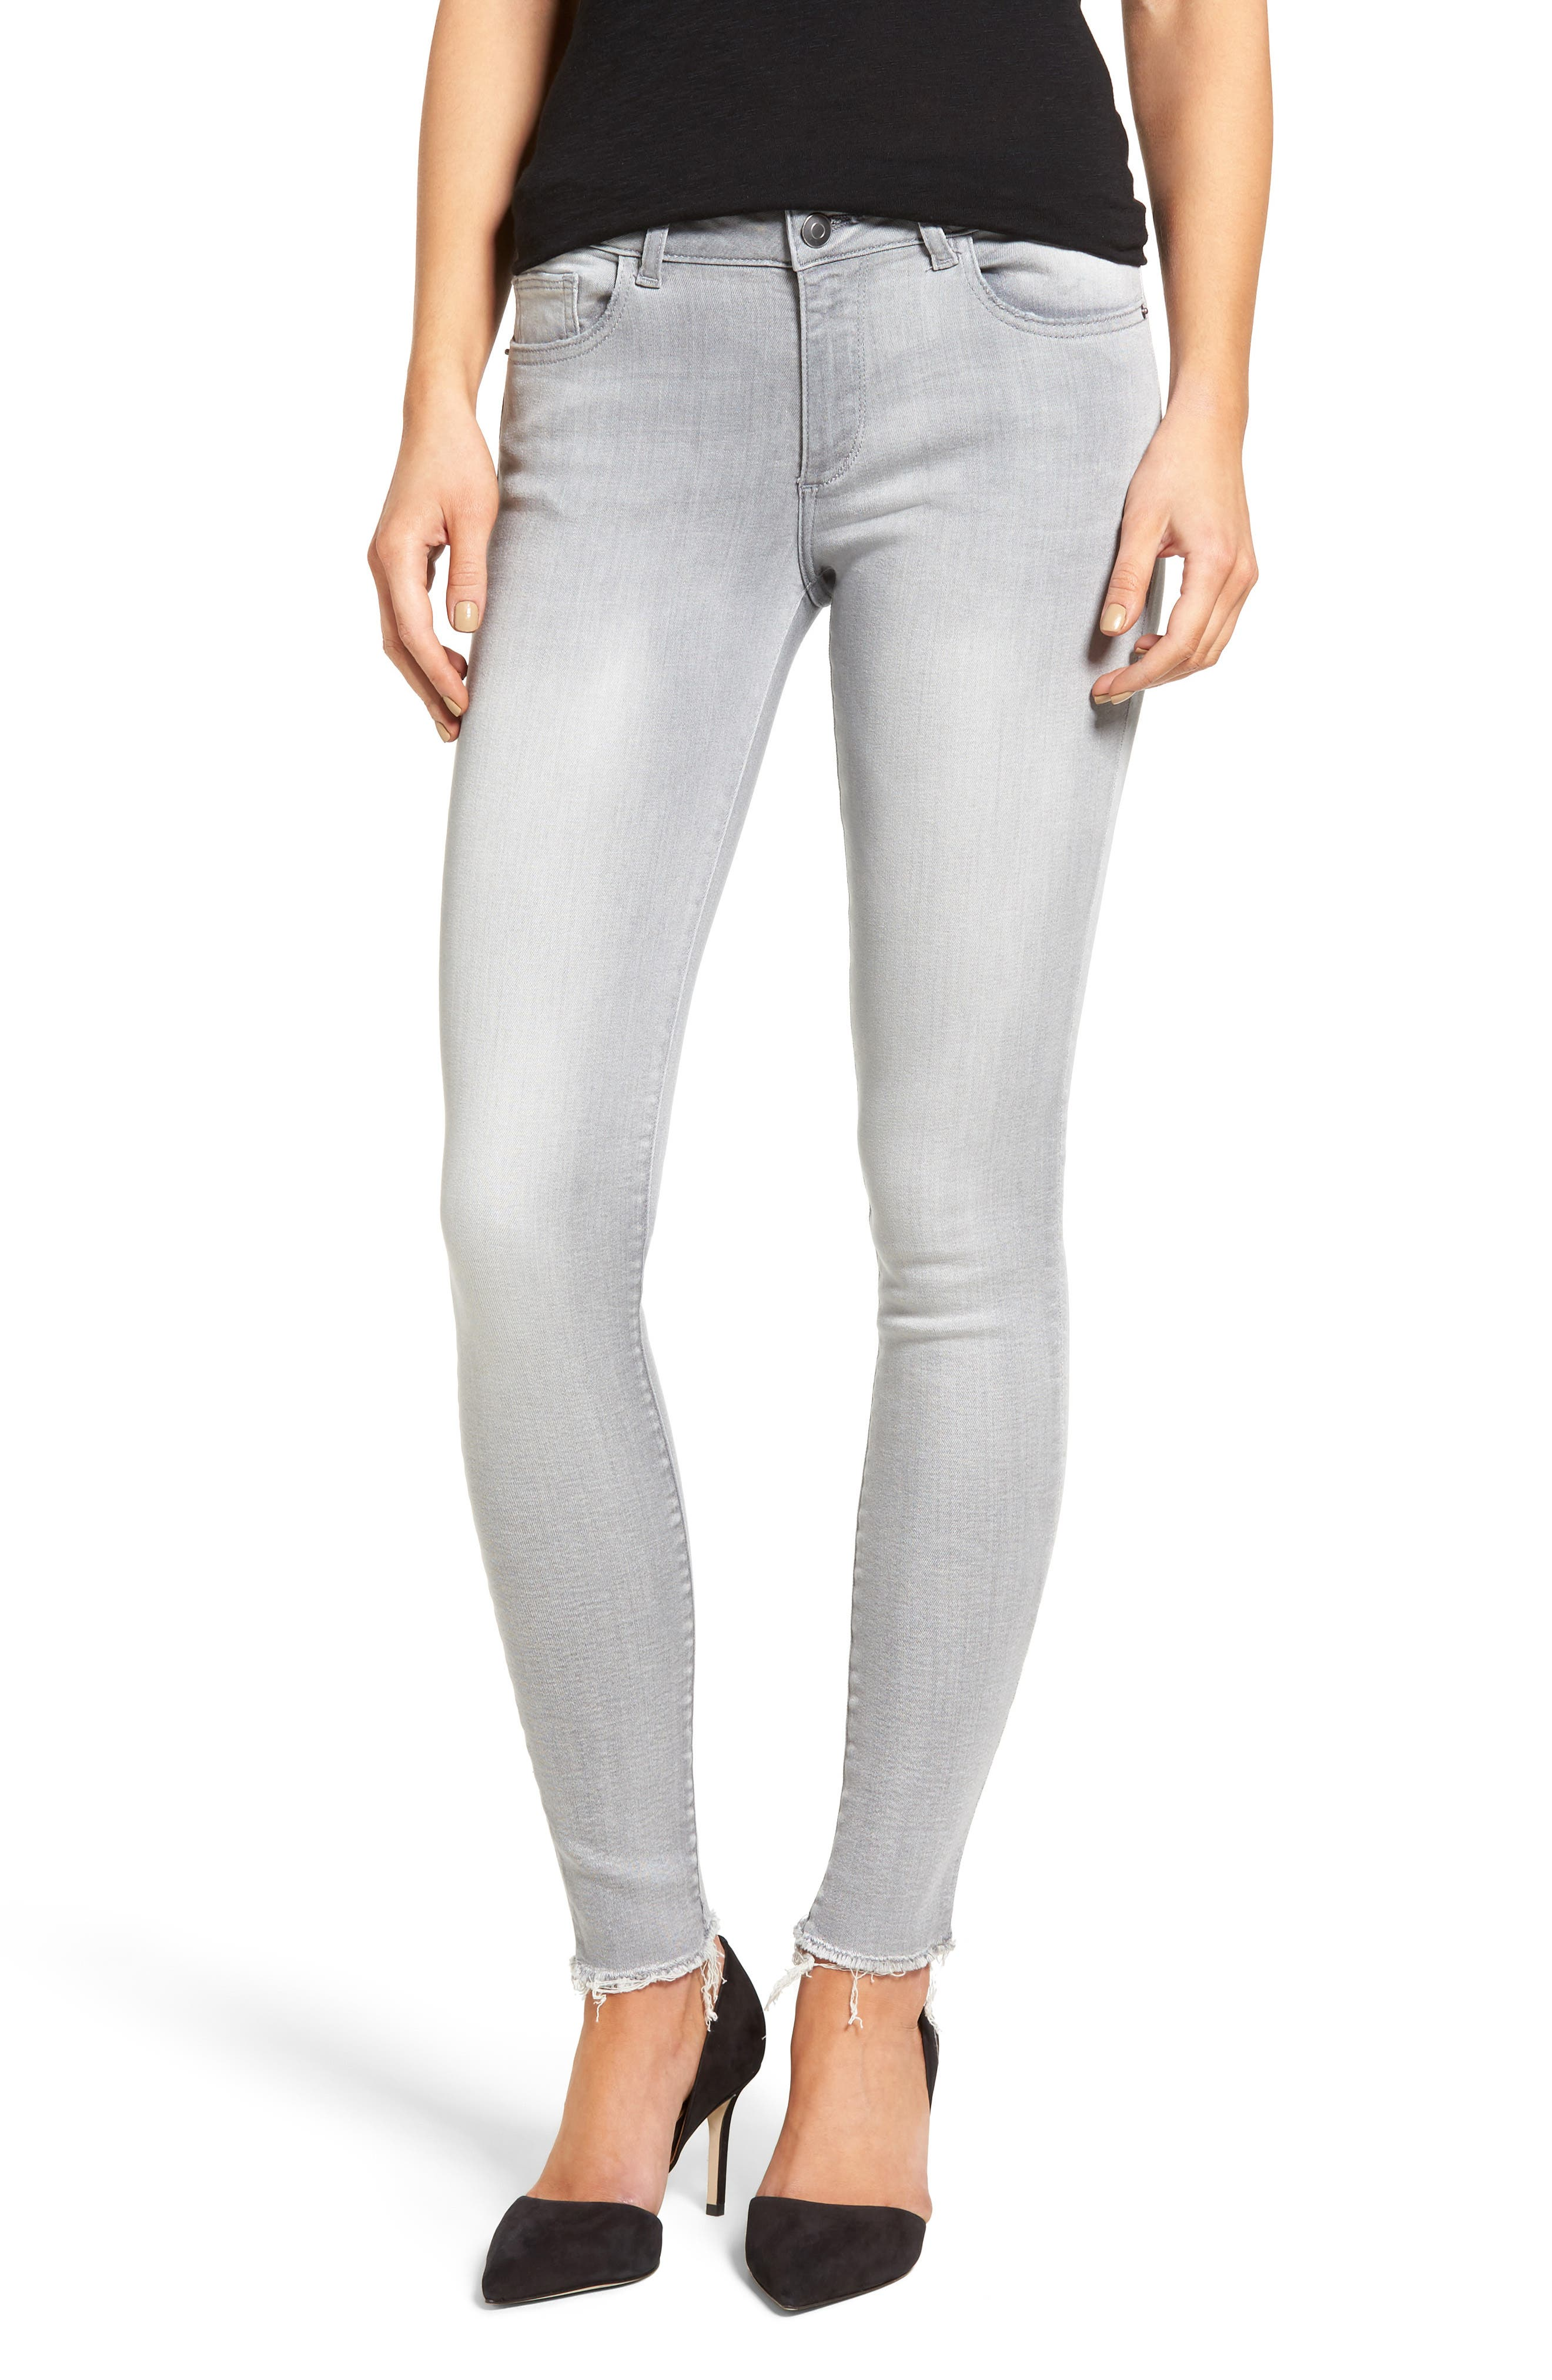 Main Image - DL1961 Emma Power Legging Jeans (Legendary)